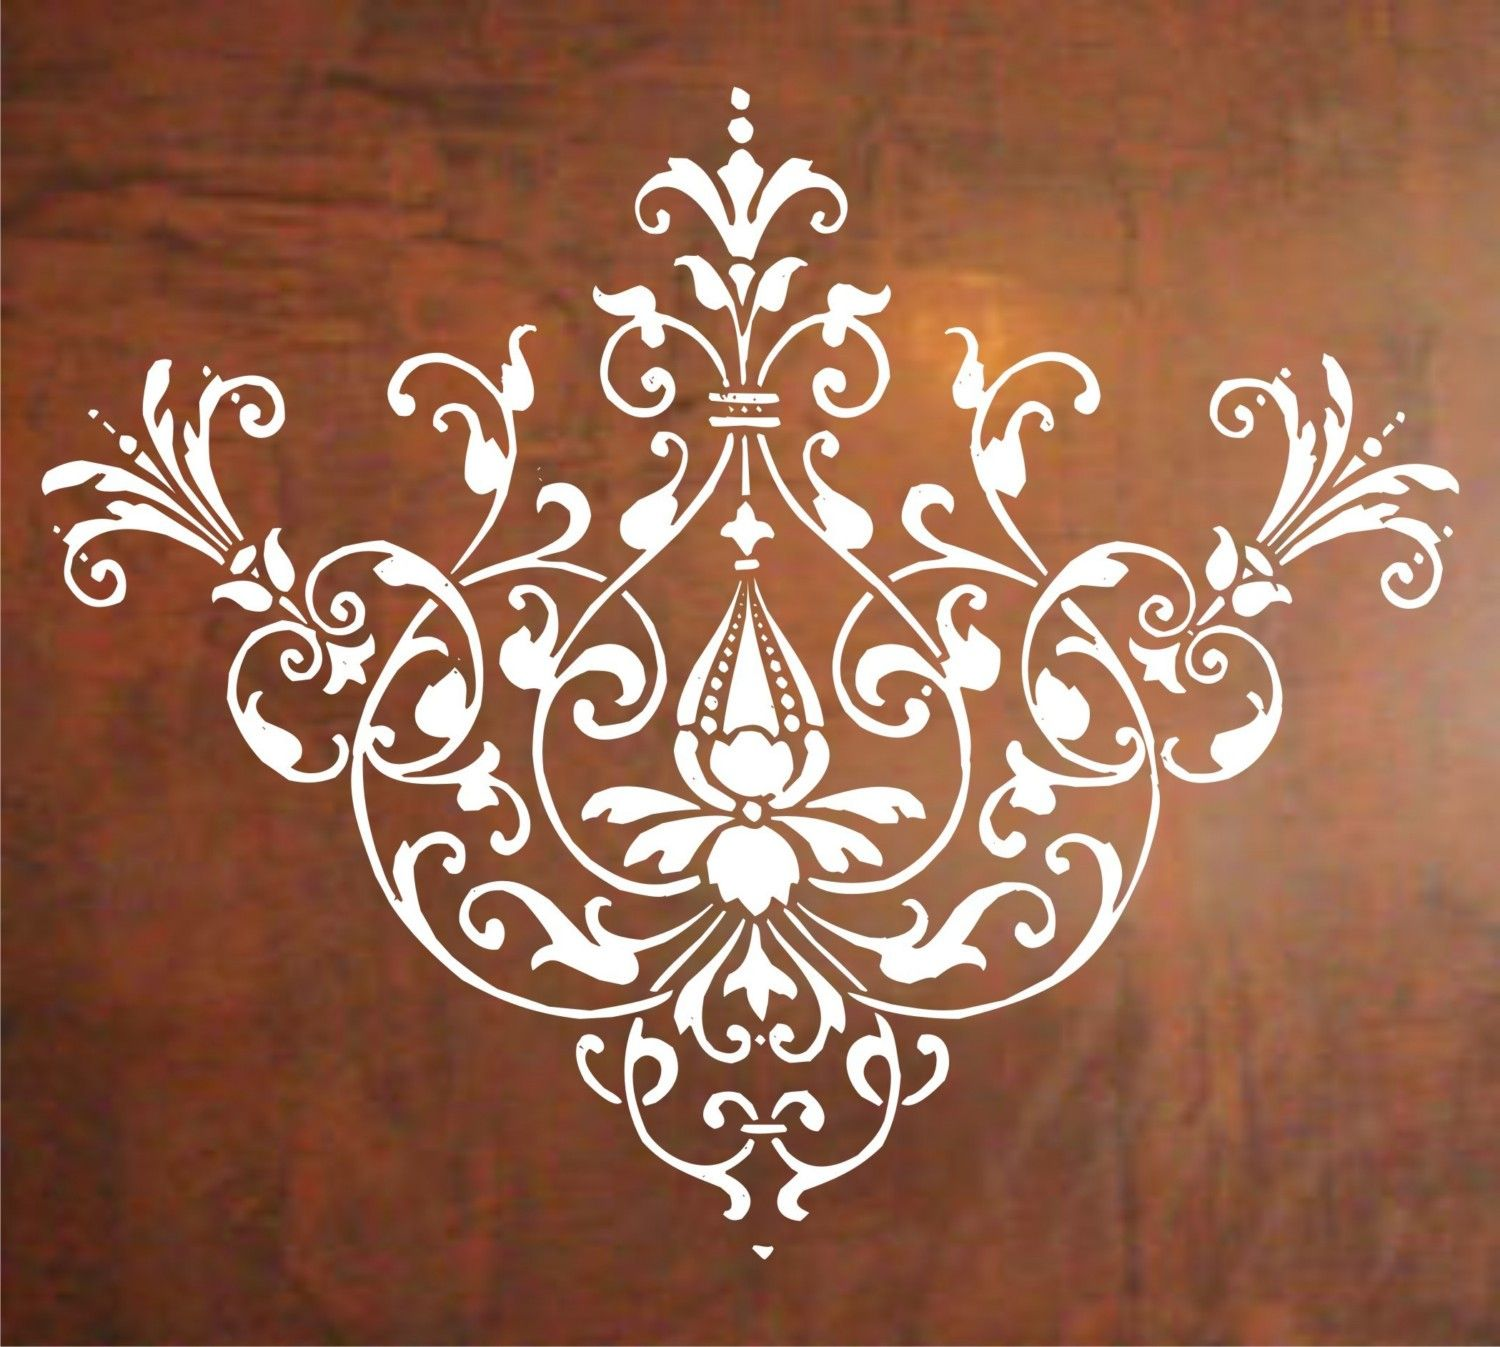 Decoration Murale Baroque Baroque Design Wall Decal Sticker Graphic Mural Design